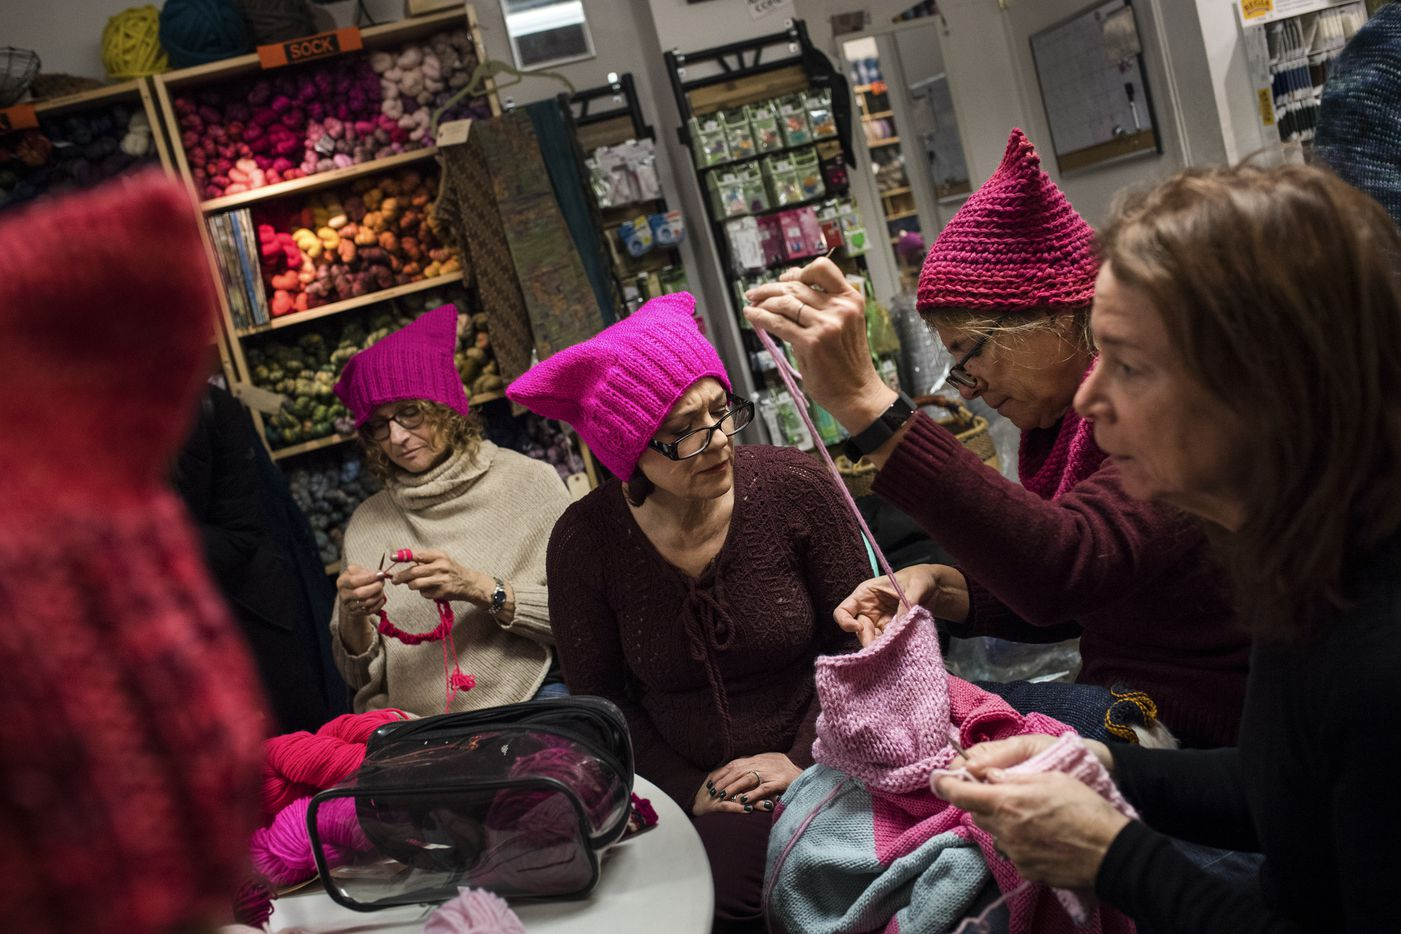 Knitters involved in the Pussyhat Project, a response to President Donald Trump's election campaign comments, at Knitty City in New York, Jan. 10, 2017. Throughout the city, individuals and groups concerned about today's political climate donated their time, talent and passion to support the Women's March on Washington and other events across the country.